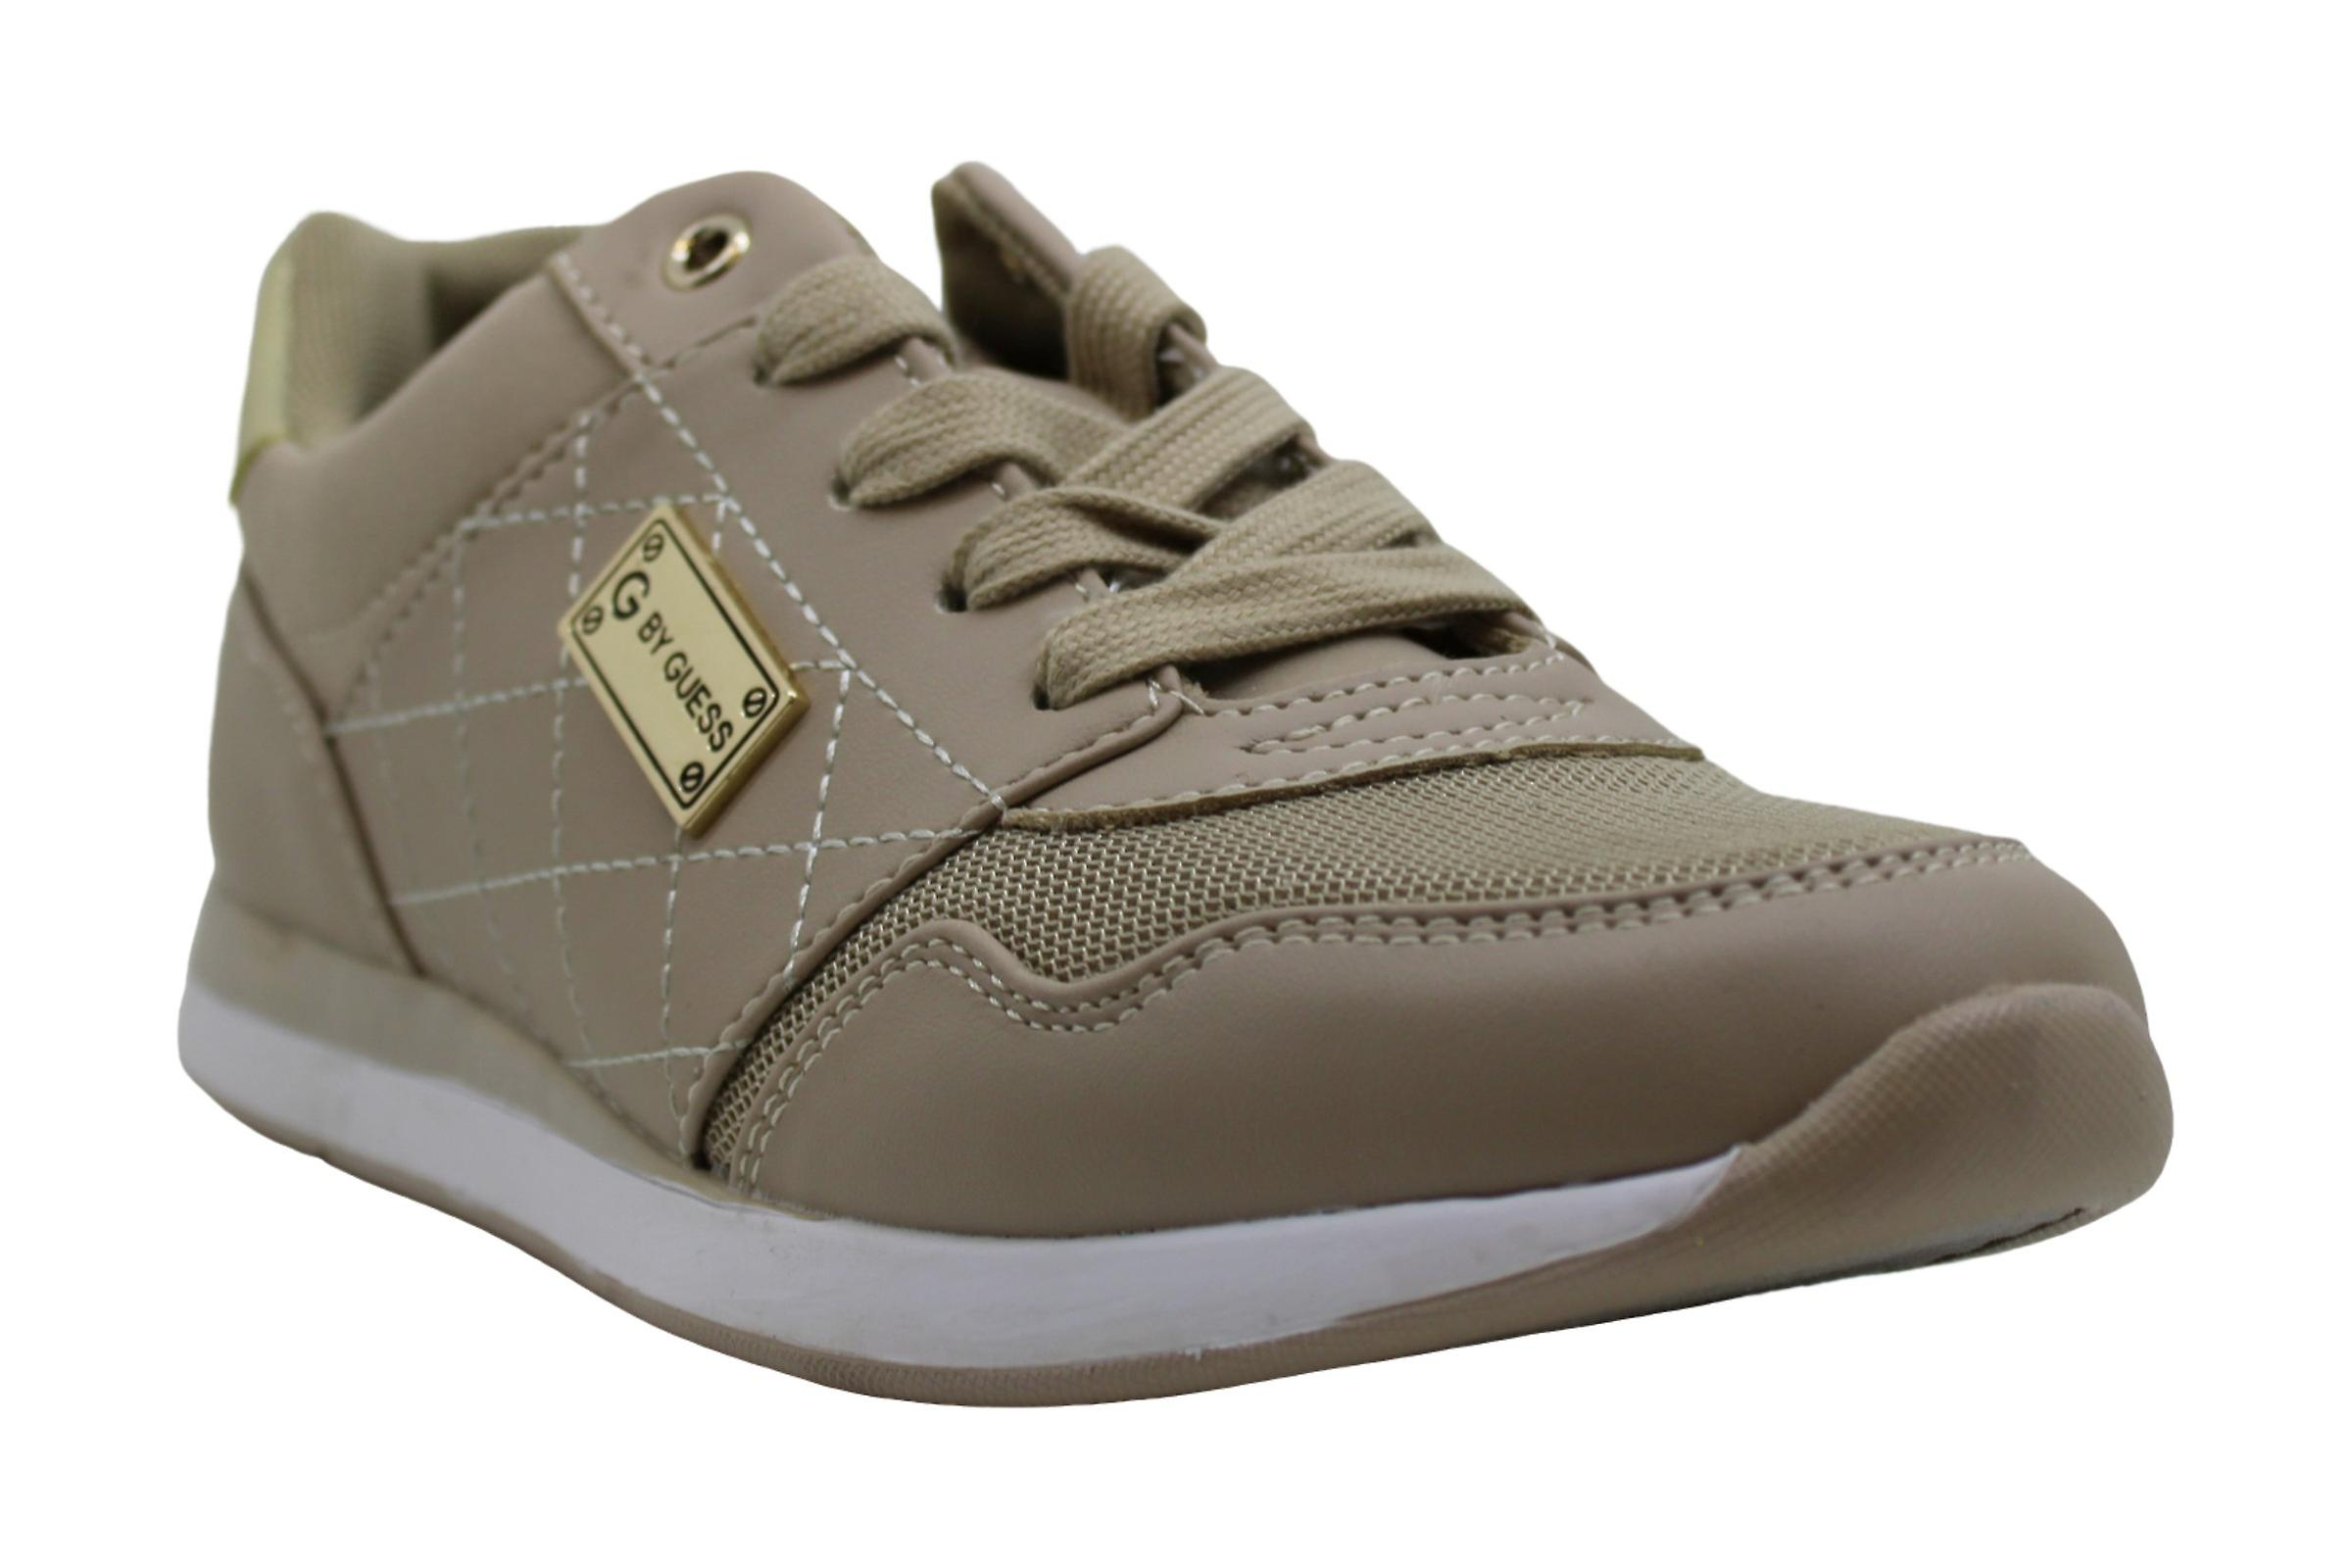 G ved gæt dame Jeryl lav top lace up mode sneakers